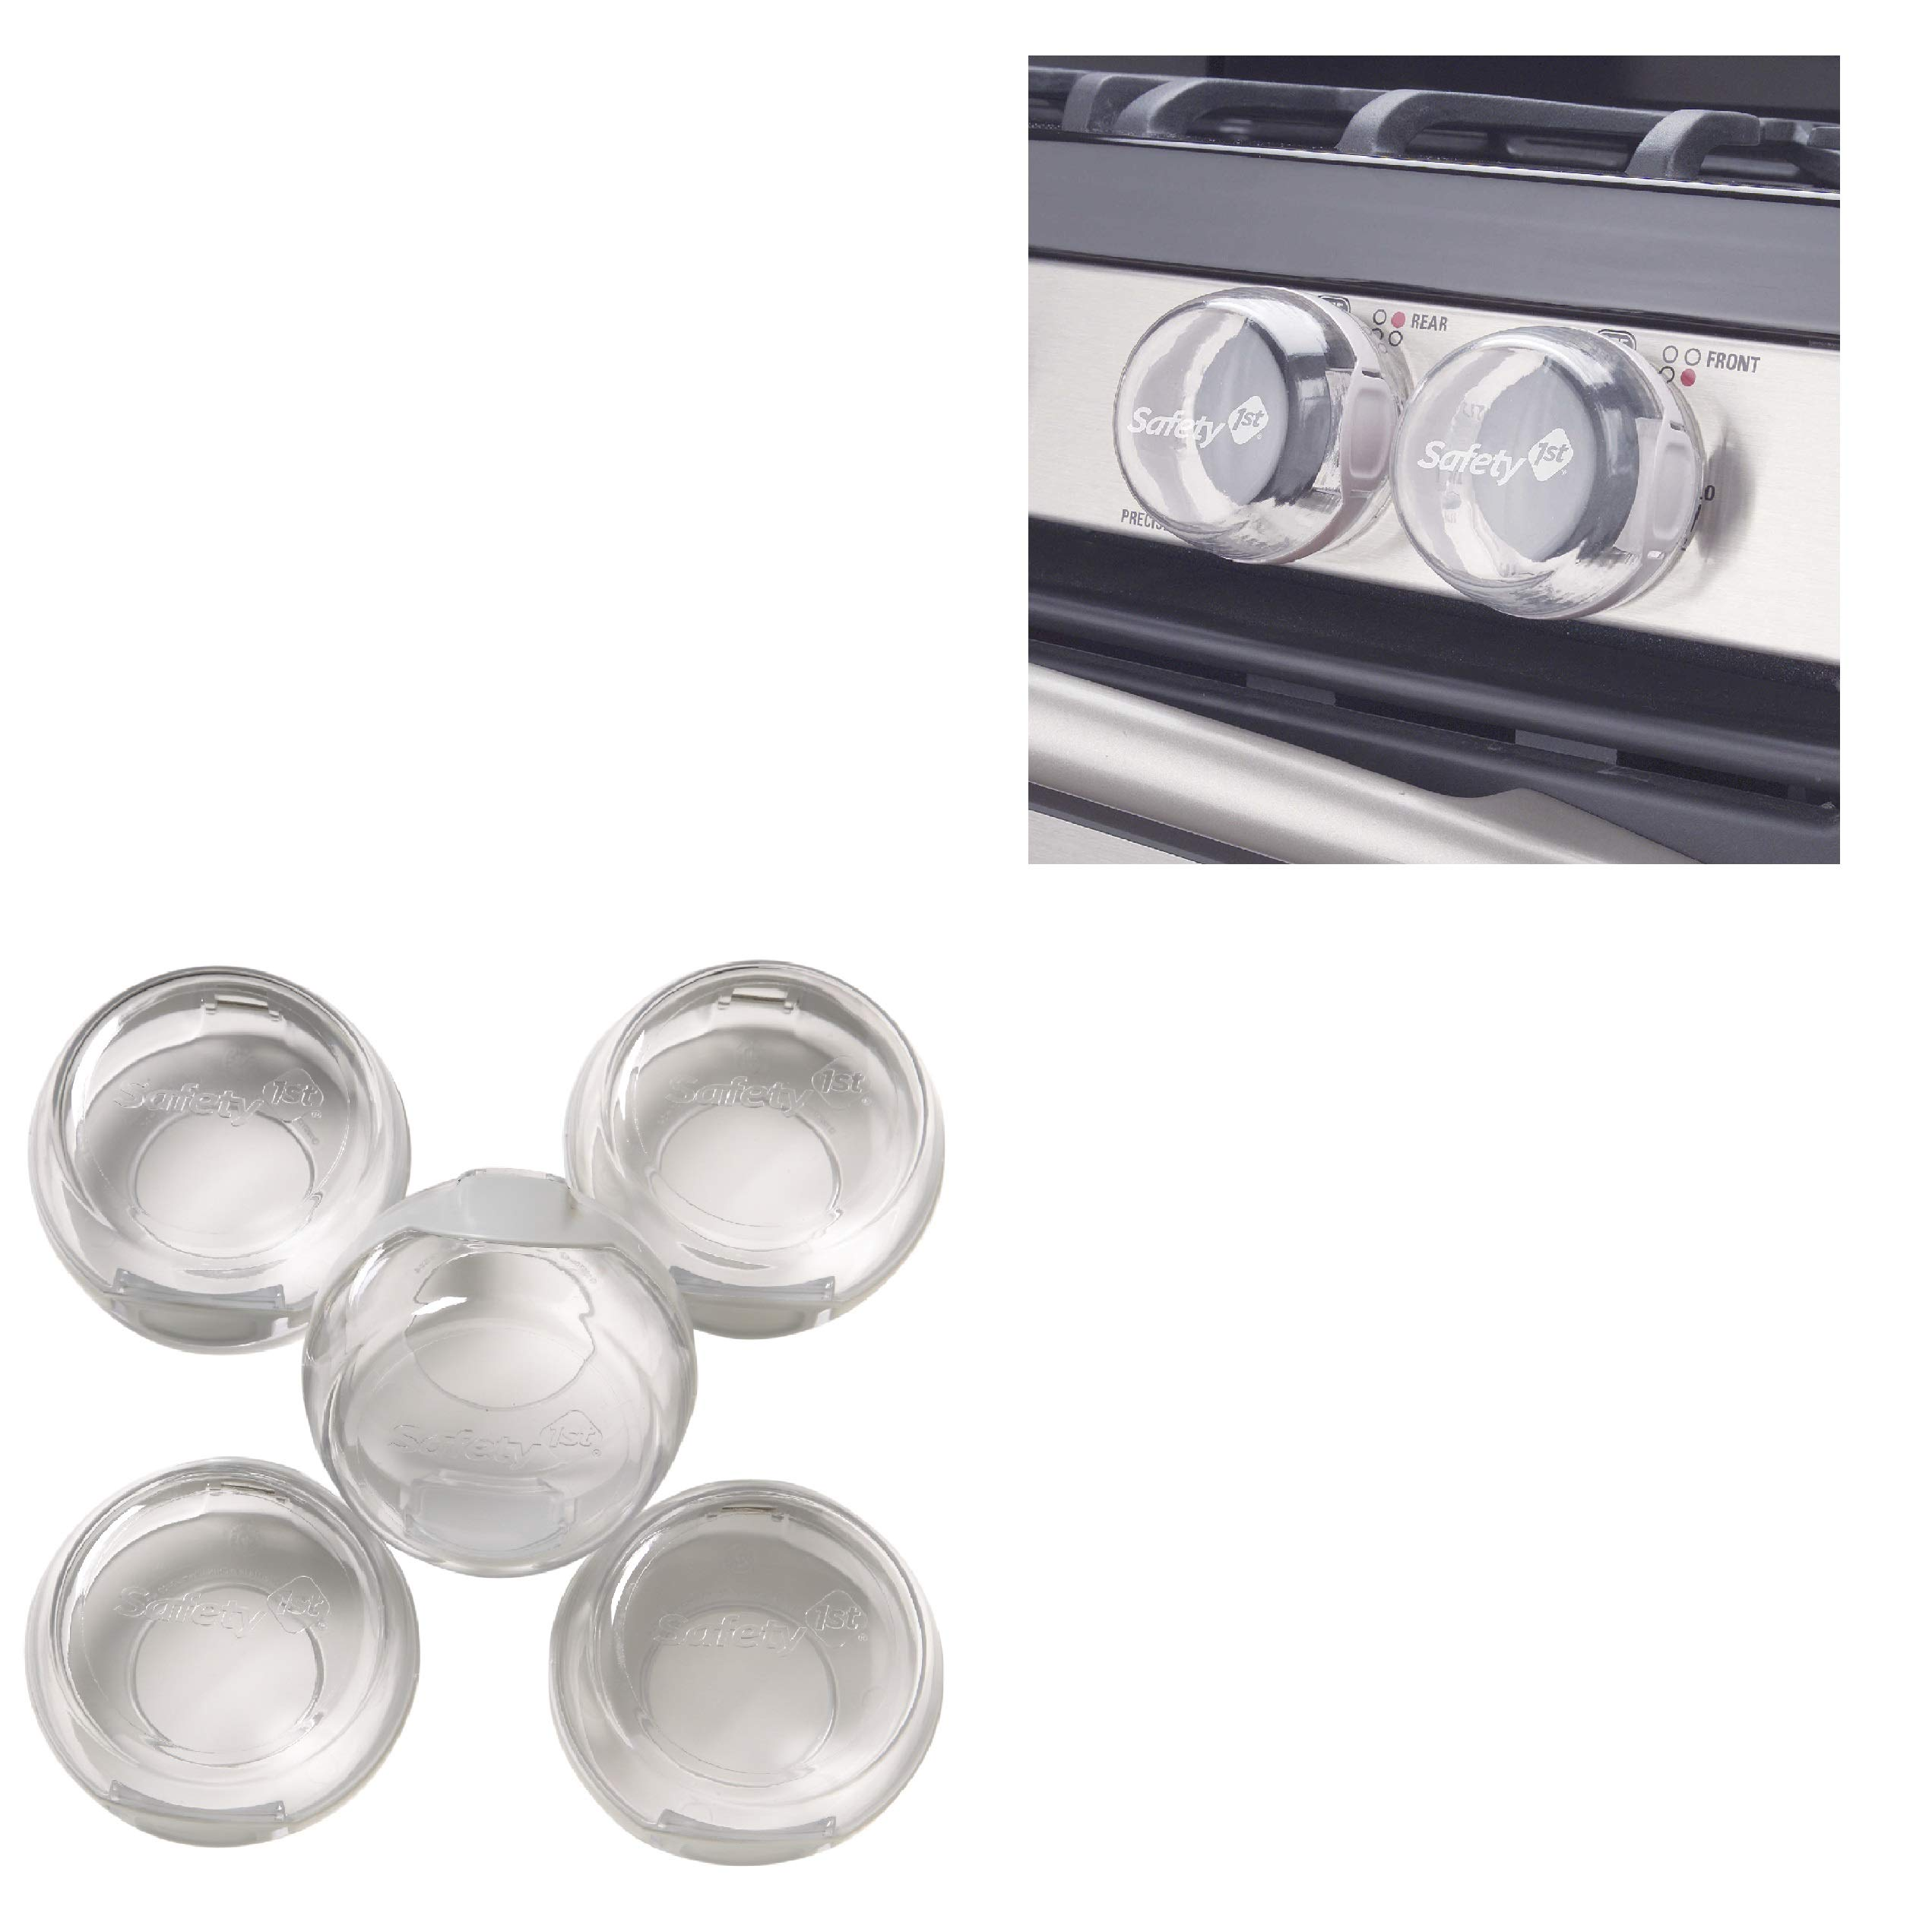 Safety Knob Covers 1st 5 Pack Clear View Stove Knob Hinged Covers Child Proof - Oven Handle Covers - Stove knob Covers for Child Safety - Stove knob Covers - Child Safety Door knob Covers.